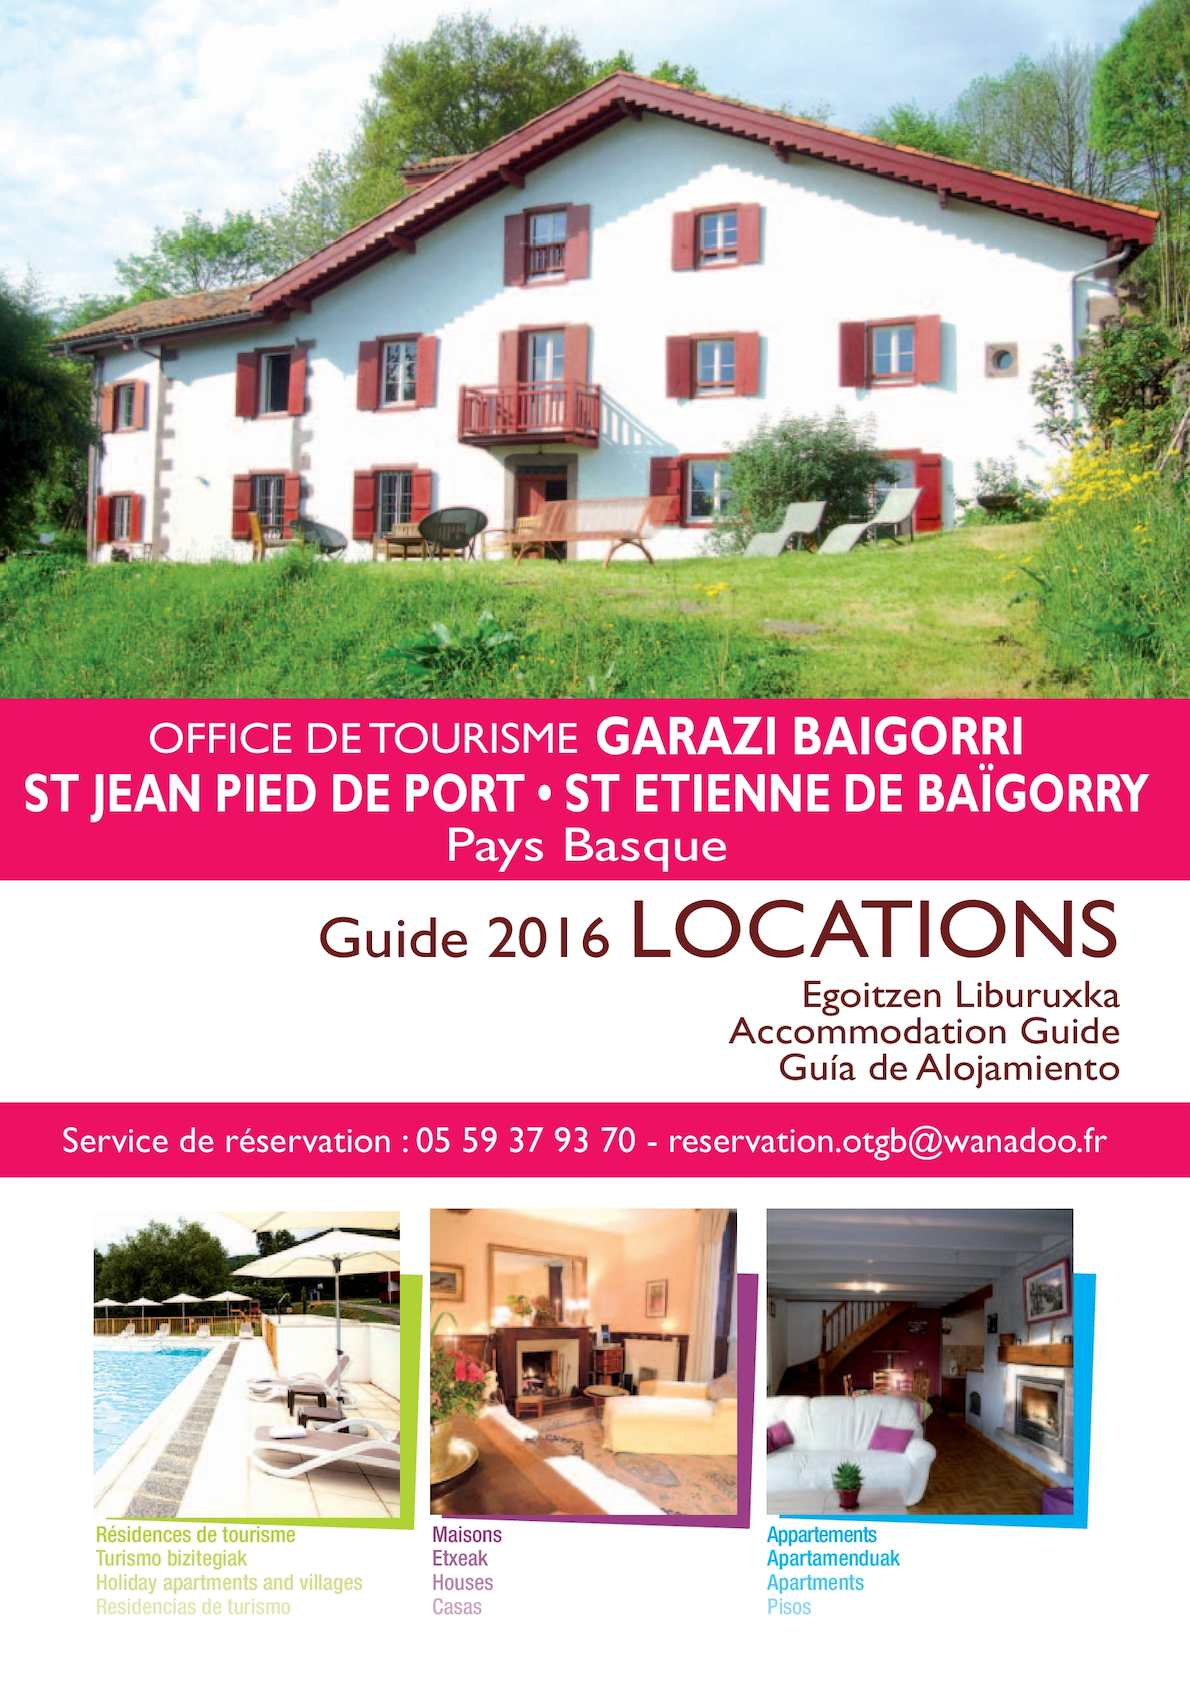 Calam o locations 2016 st jean pied de port st etienne - Office de tourisme saint etienne de baigorry ...